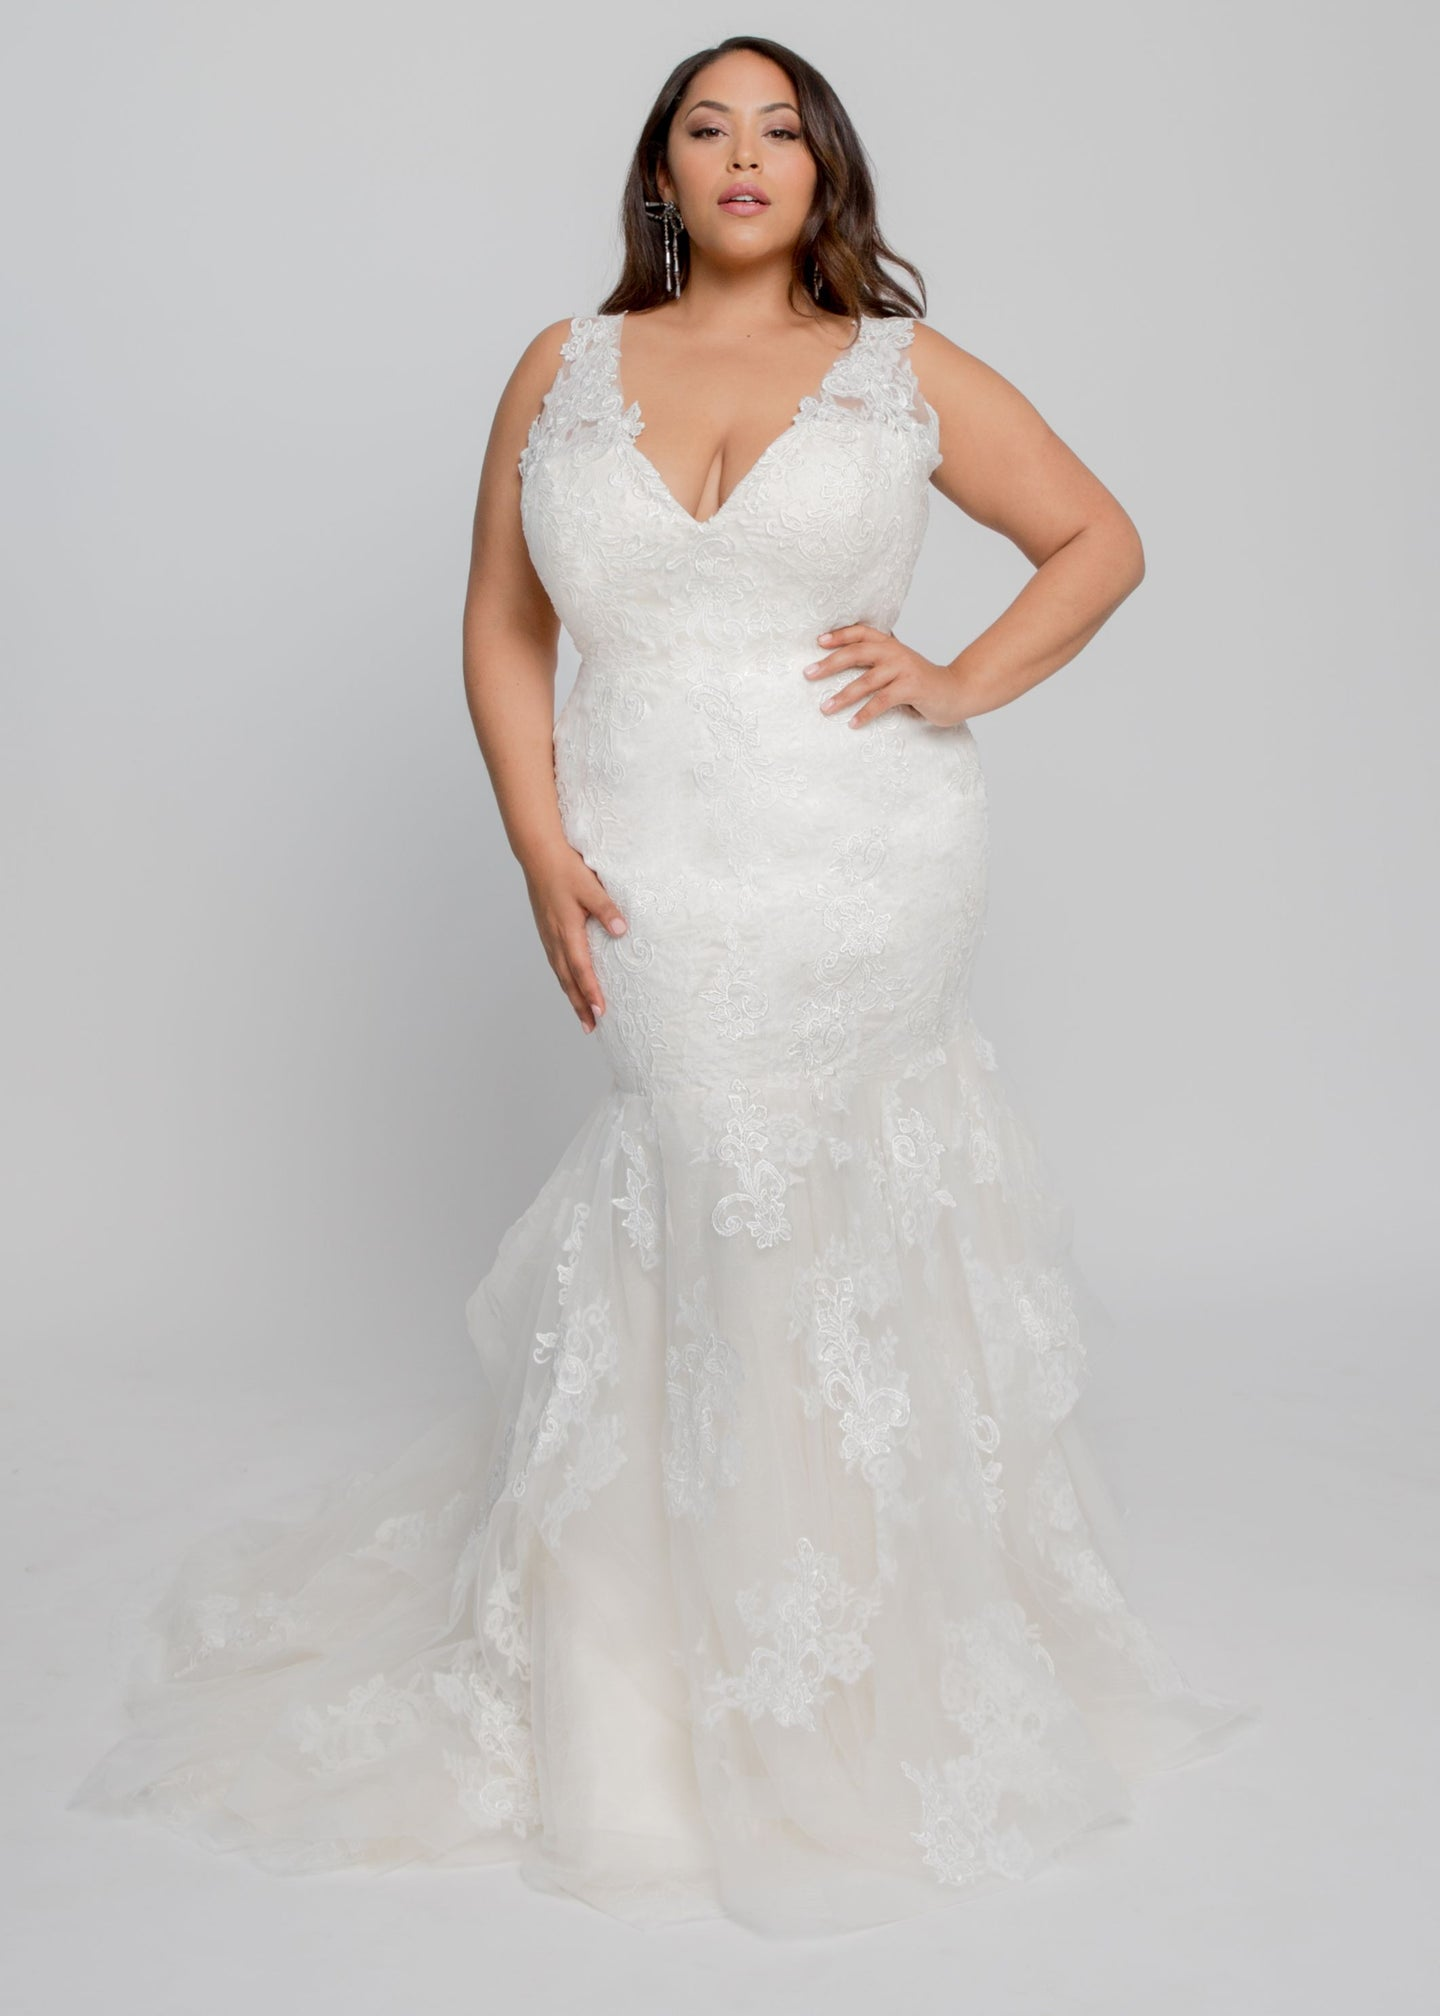 Gorgeous bridal gowns for all body shapes: plus size, curvy, or petite brides. Try on our wedding dresses at home. Size 0-30. Comfortable. Convenient. Fun. Lace or satin. Mermaid or A-line.  Fulfill your lace dreams with this gown featuring a stunning lace-lined V neckline and layered lace and tulle skirt. This figure hugging shape shows off your curves and features a billowy tulle layered skirt. The applique details and layered laces and champagne tulle lead to an ethereal chapel train